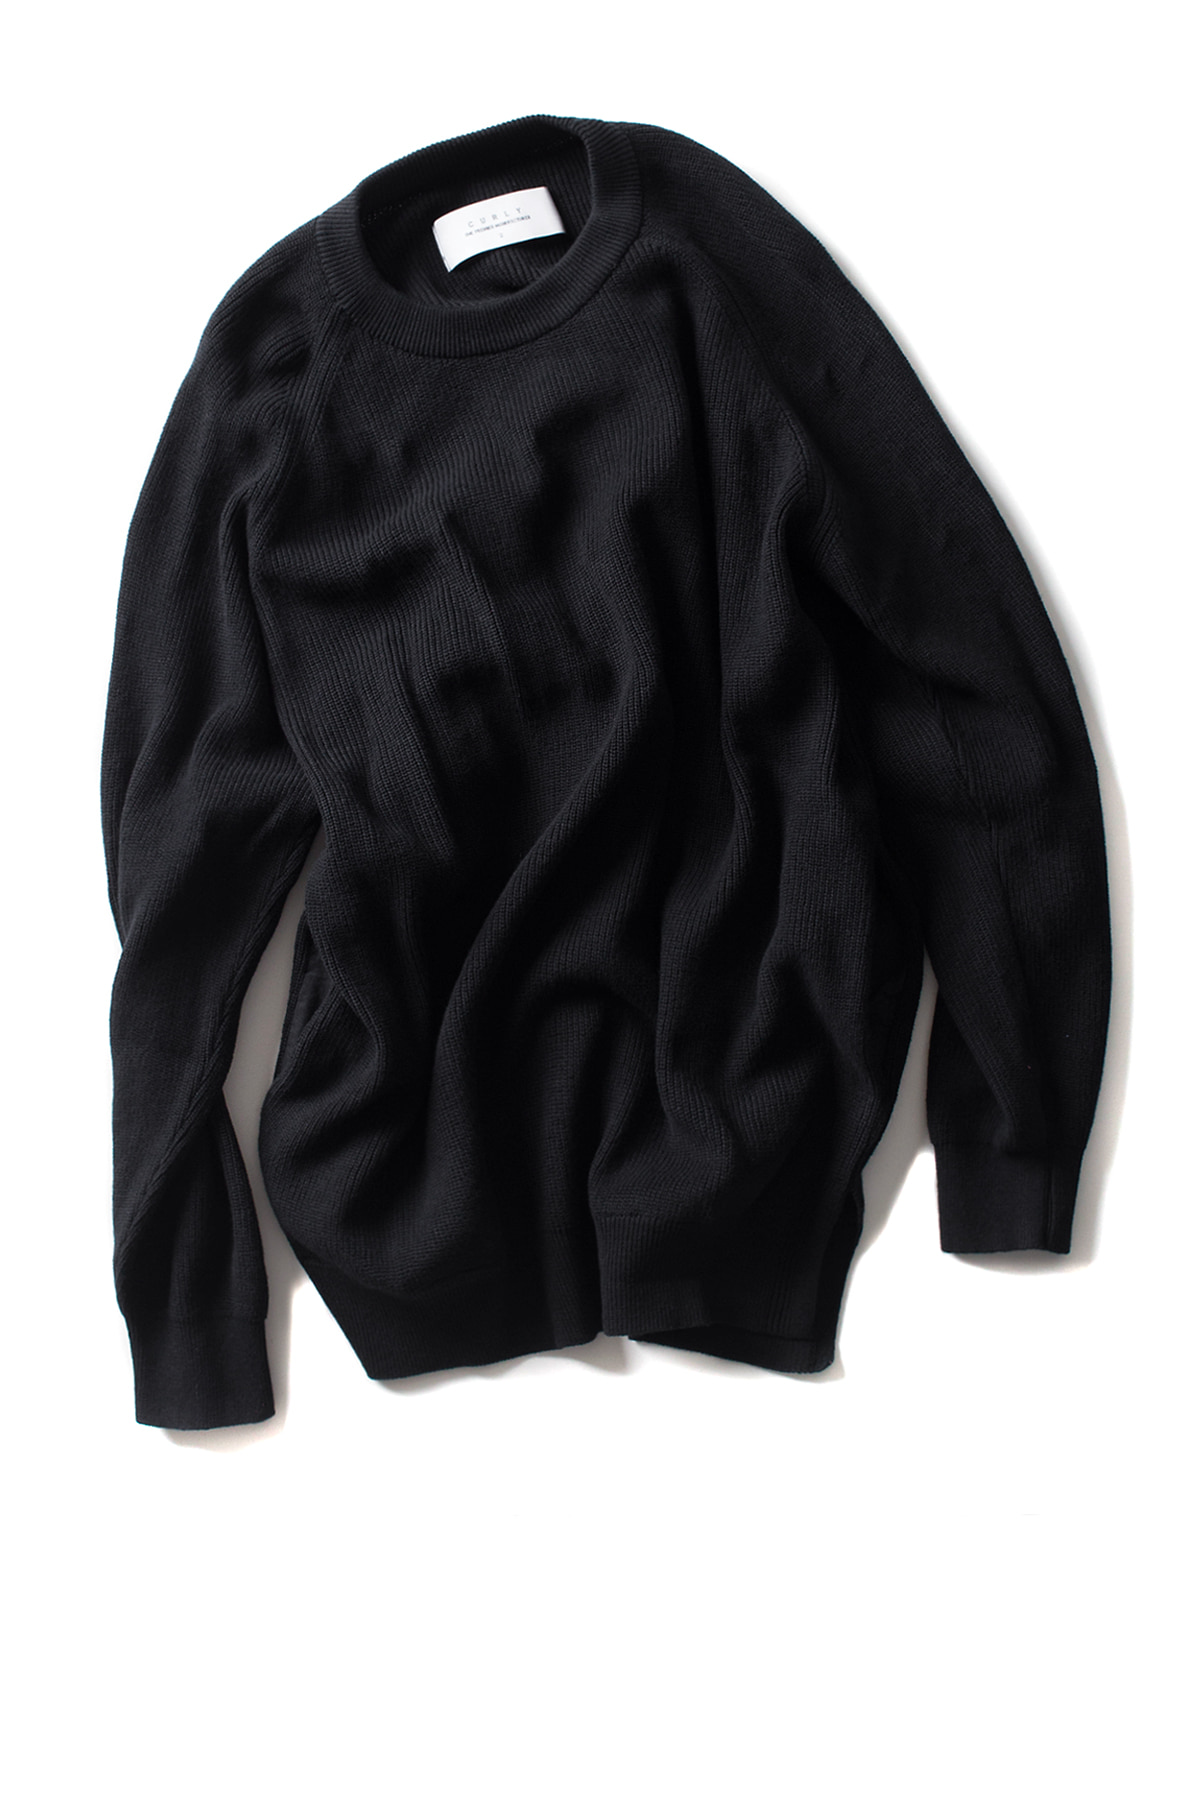 Curly : Assembly Crew Knit (Black)